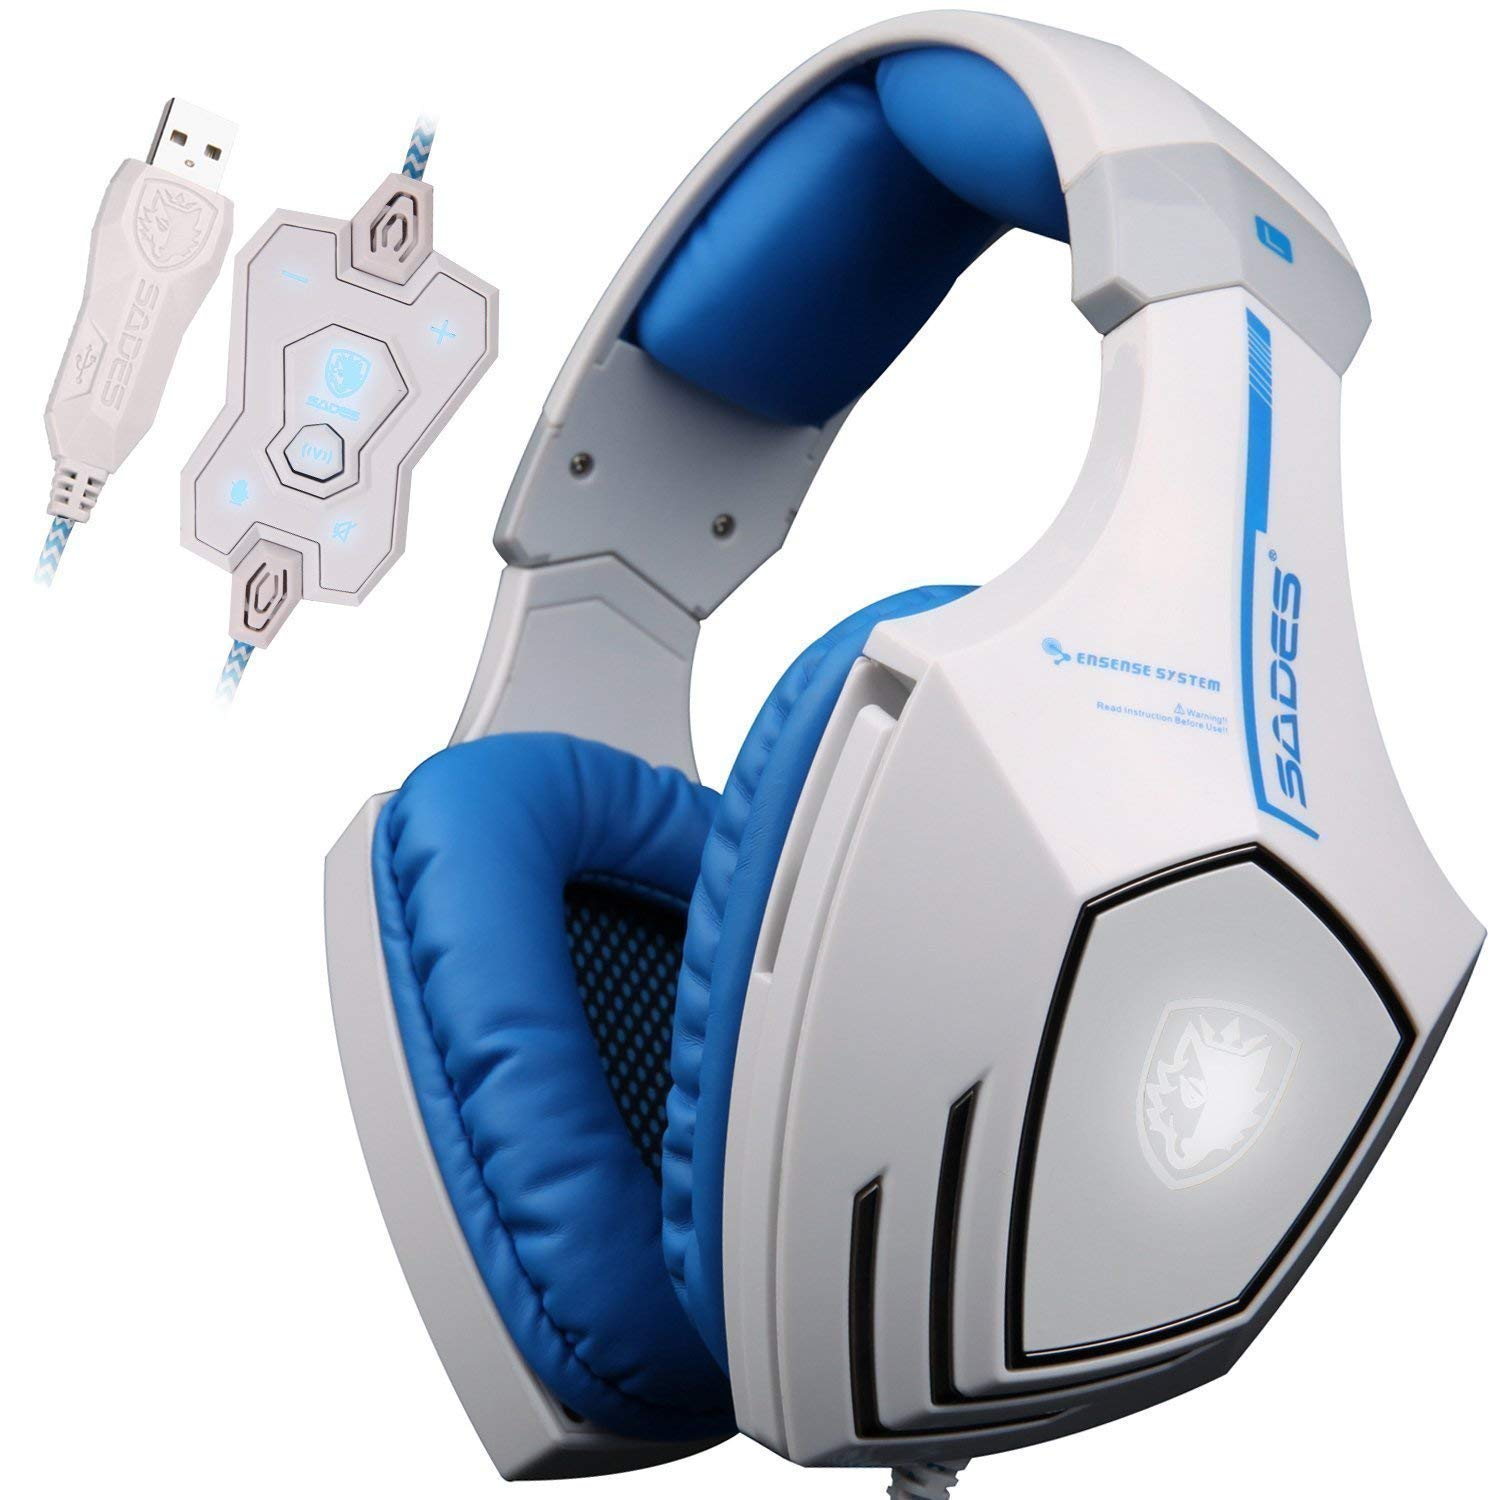 PC Gaming Headphone Headset A60 7.1 USB Surround Sound Stereo Over-Ear with Mic Bass,Vibration,Noise-Canceling,Volume Control authentic somic e95x 5 2 multi channel vibration headset super bass noise canceling headphone with led mic for ps4 fps game